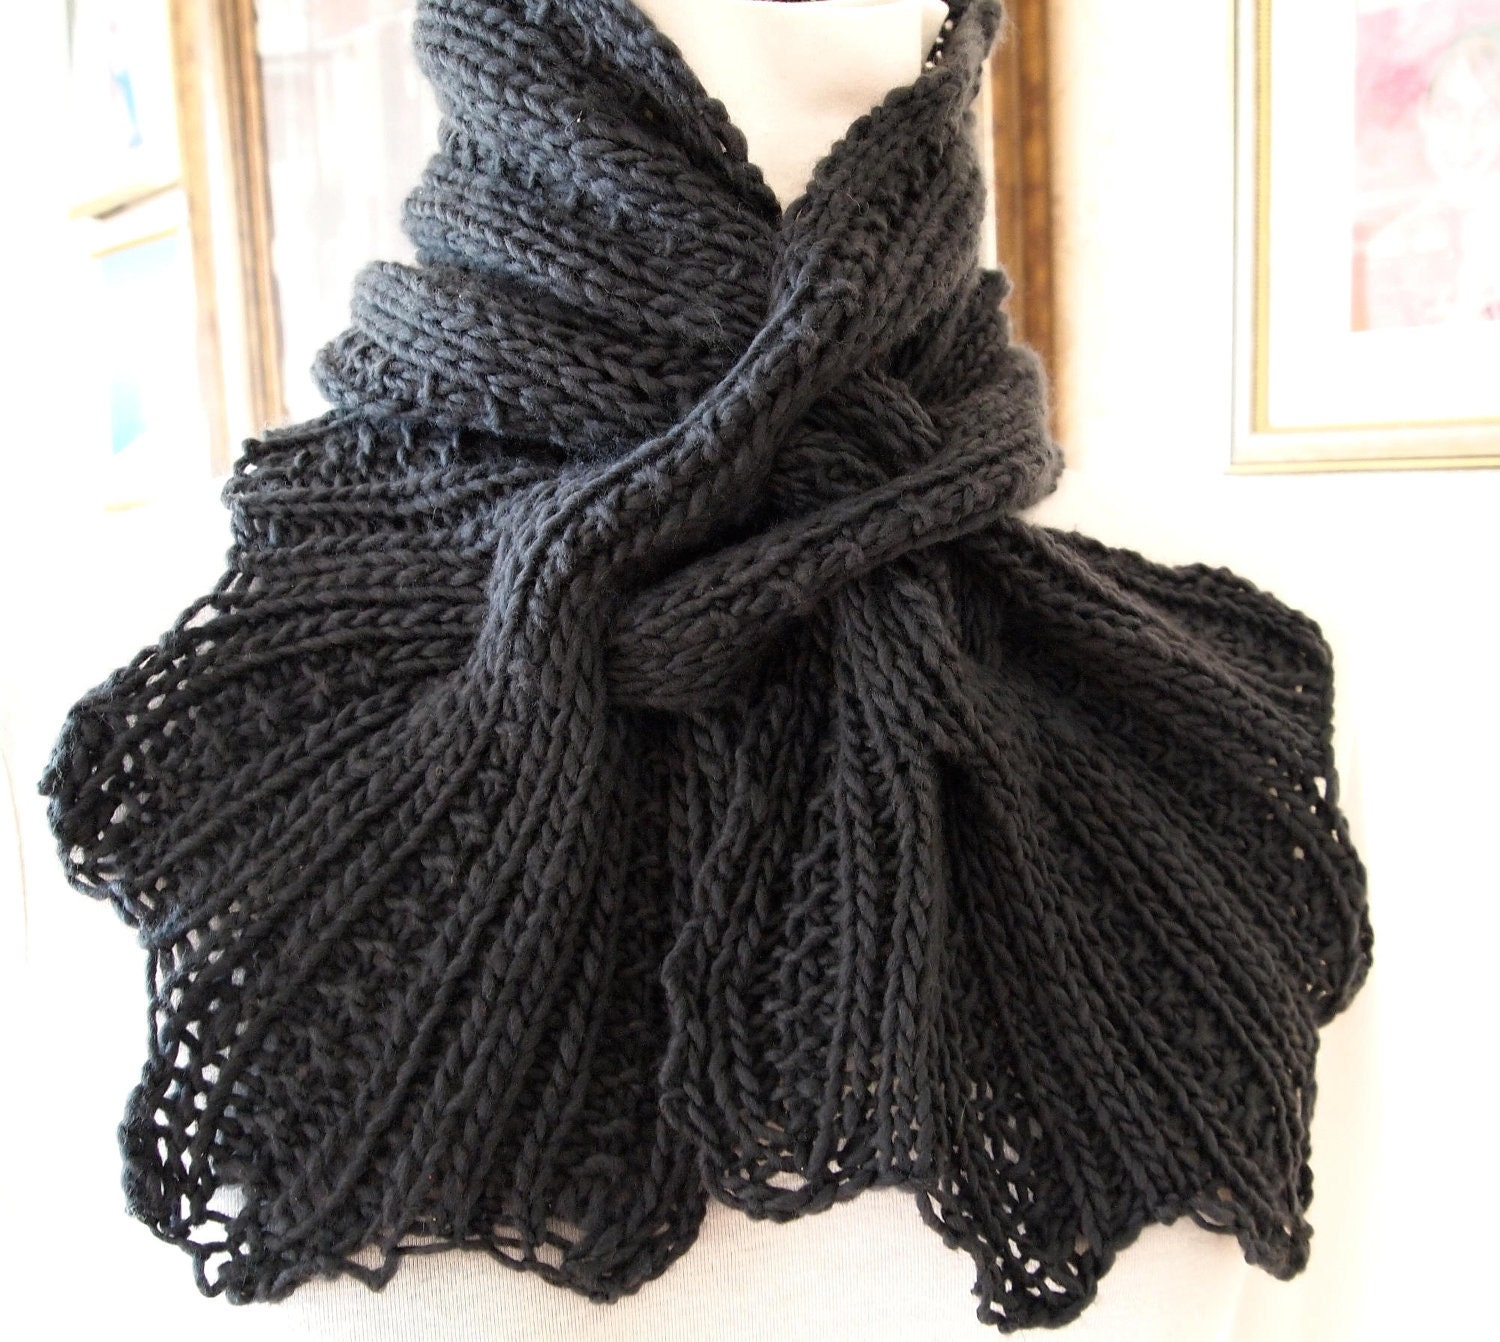 Knitting Patterns Scarf Free : HAND KNIT SCARF PATTERNS   Free Patterns